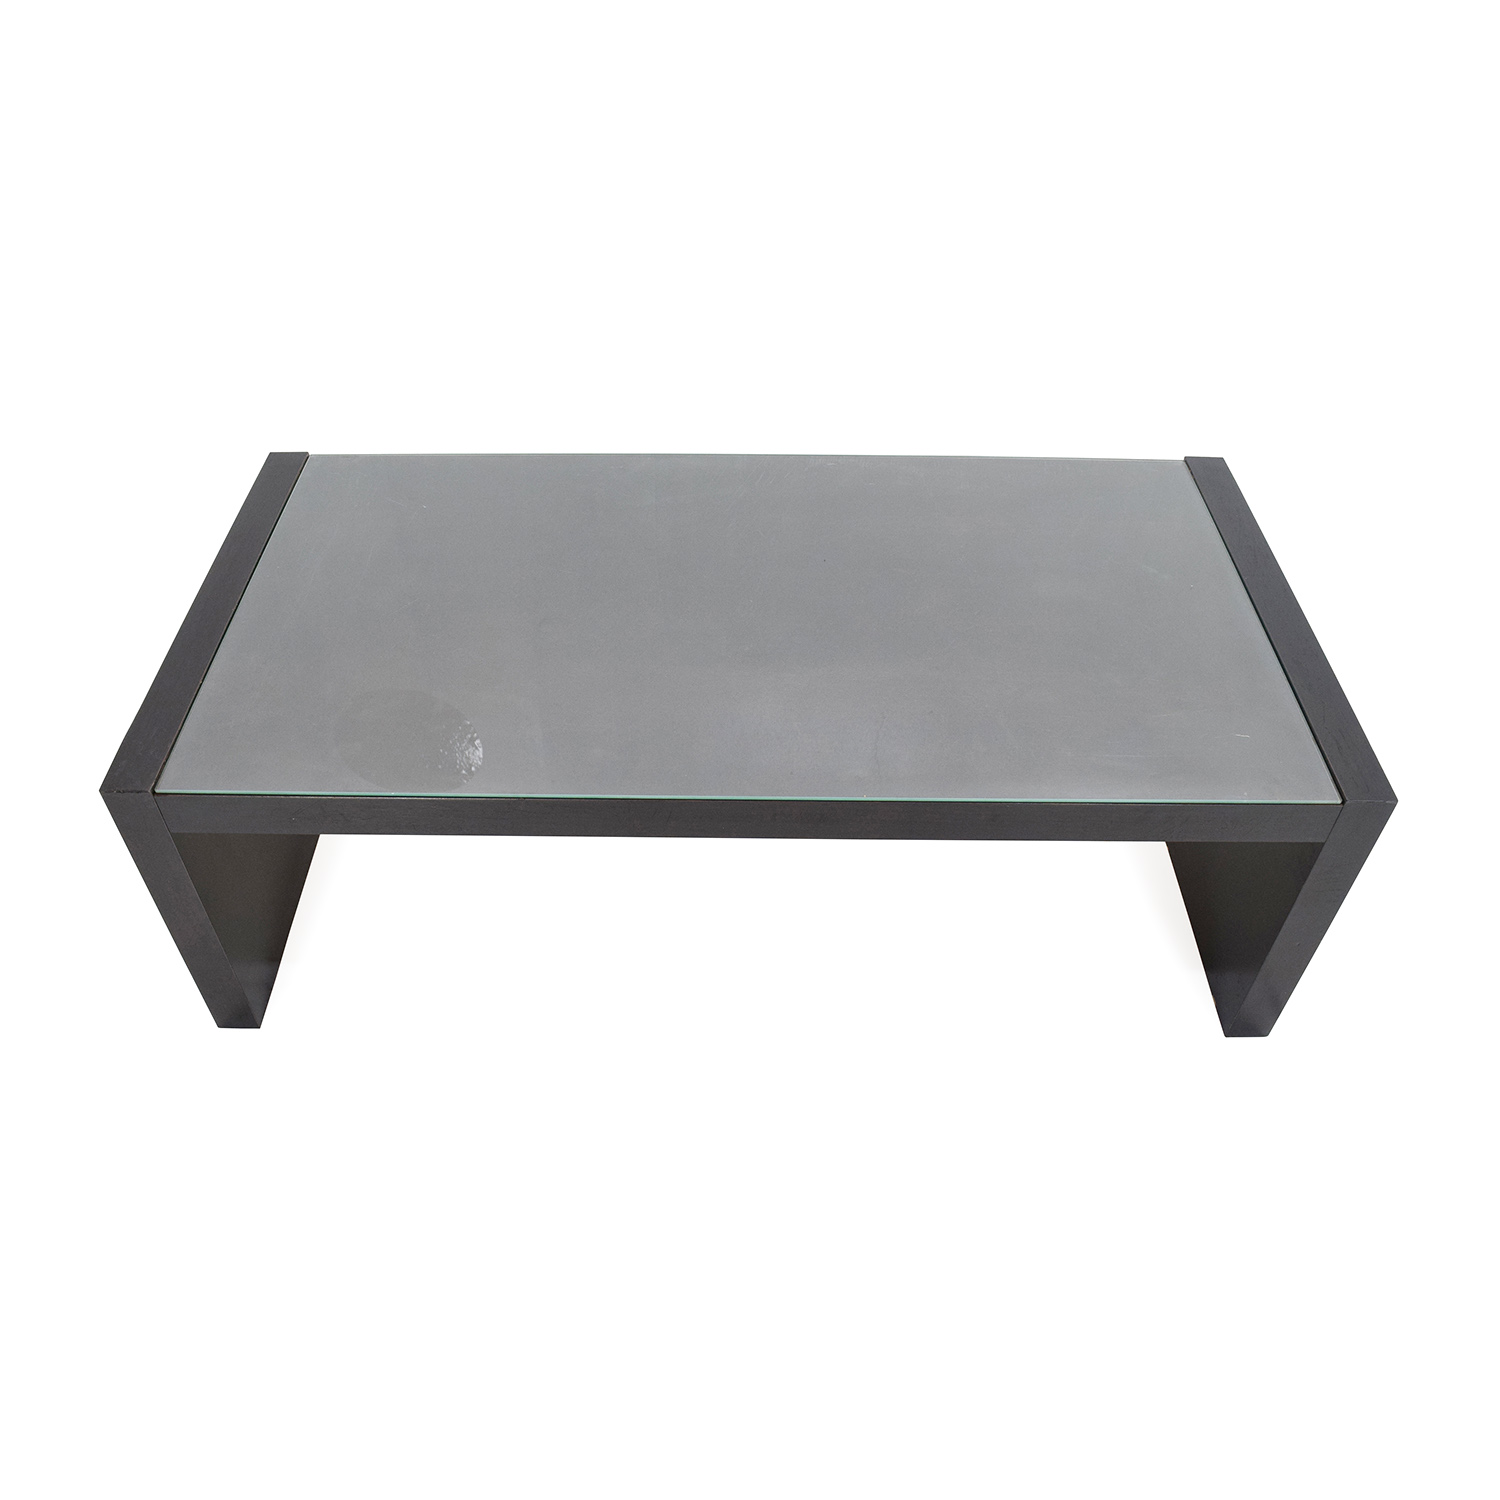 Ikea Expedit Coffee Table